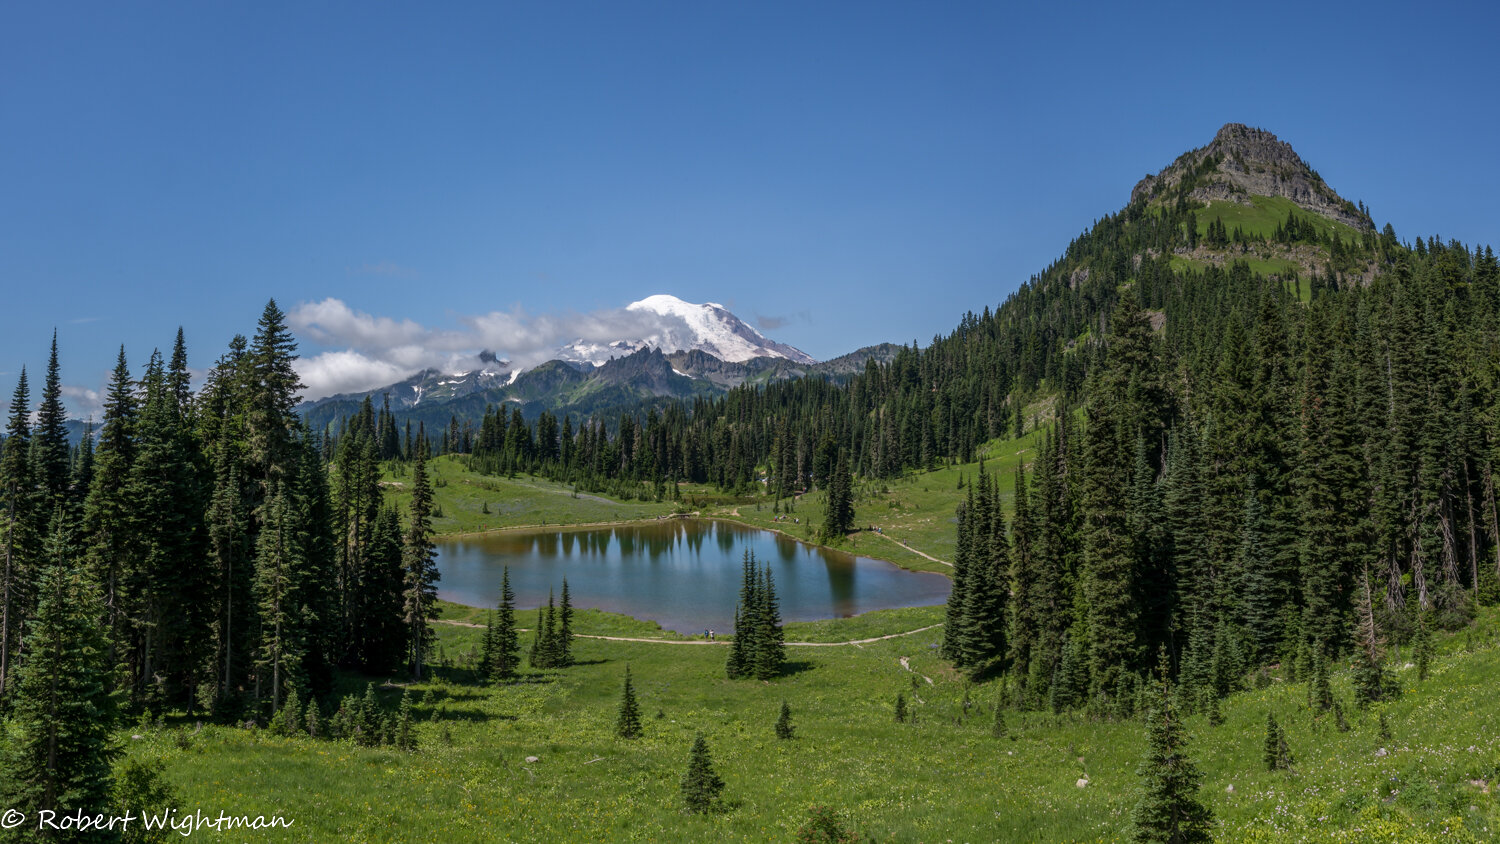 Tipsoo Lake is one of the most popular stops to capture The Mountain. Bob knew exactly where to take us for a wide view scene.